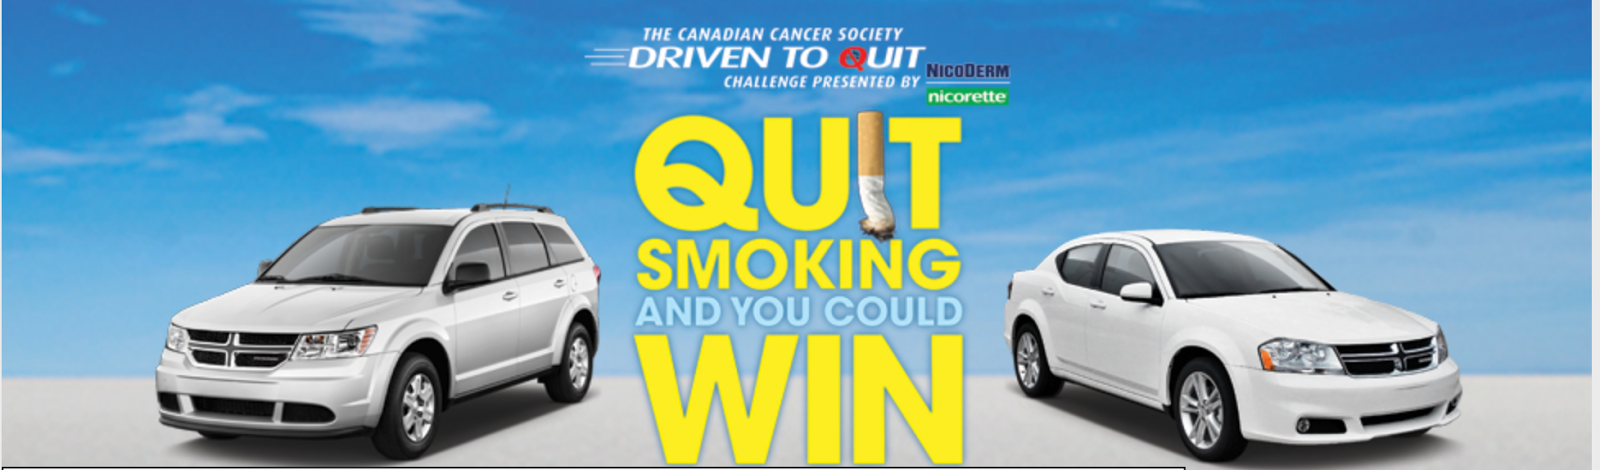 image Ontario #Giveaway for smokers and buddies - Driven to quit shared on @KawarthaMums  Driven to quit